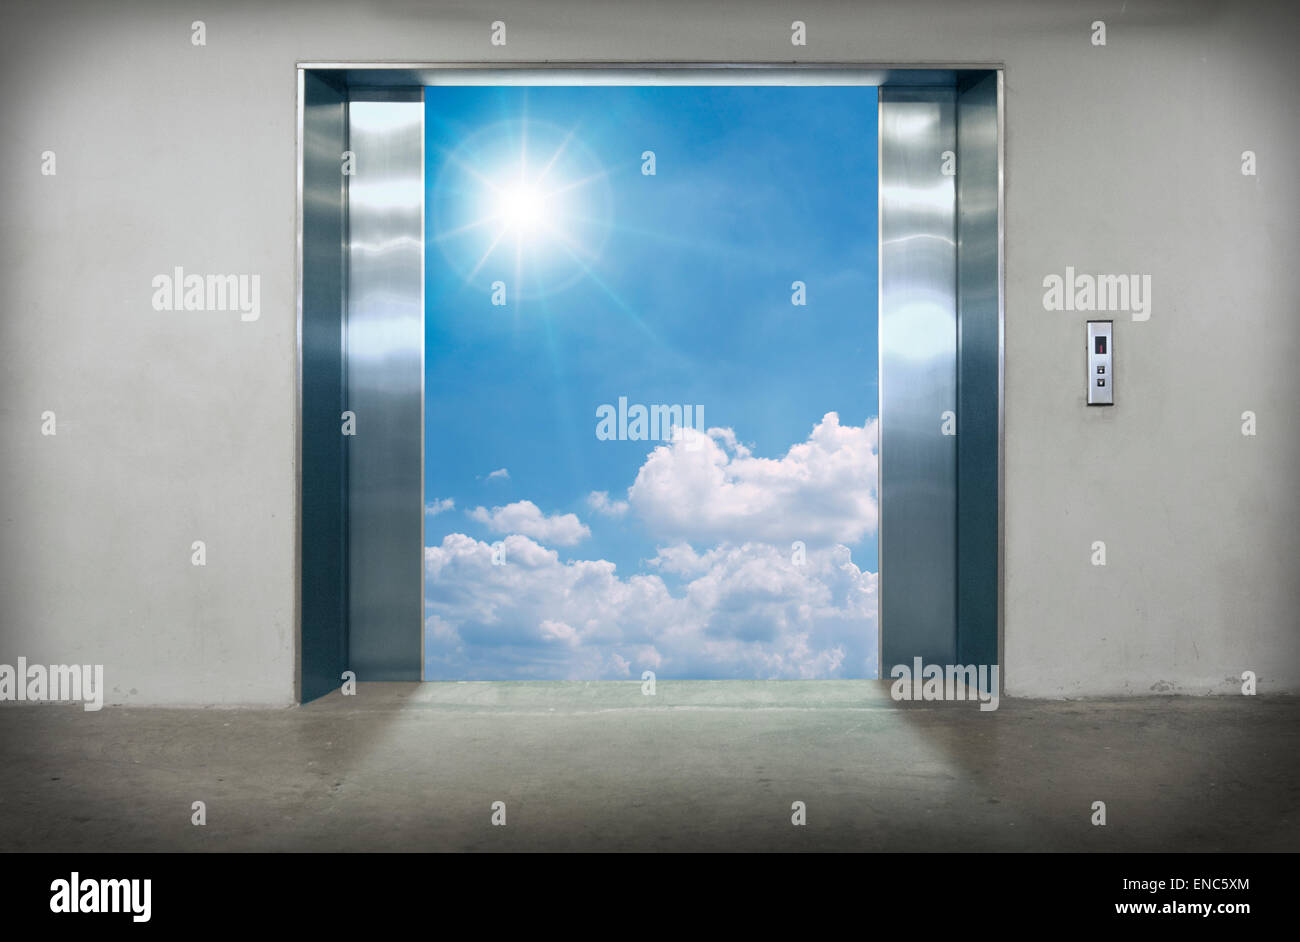 Elevator doors open to the blue sky. - Stock Image